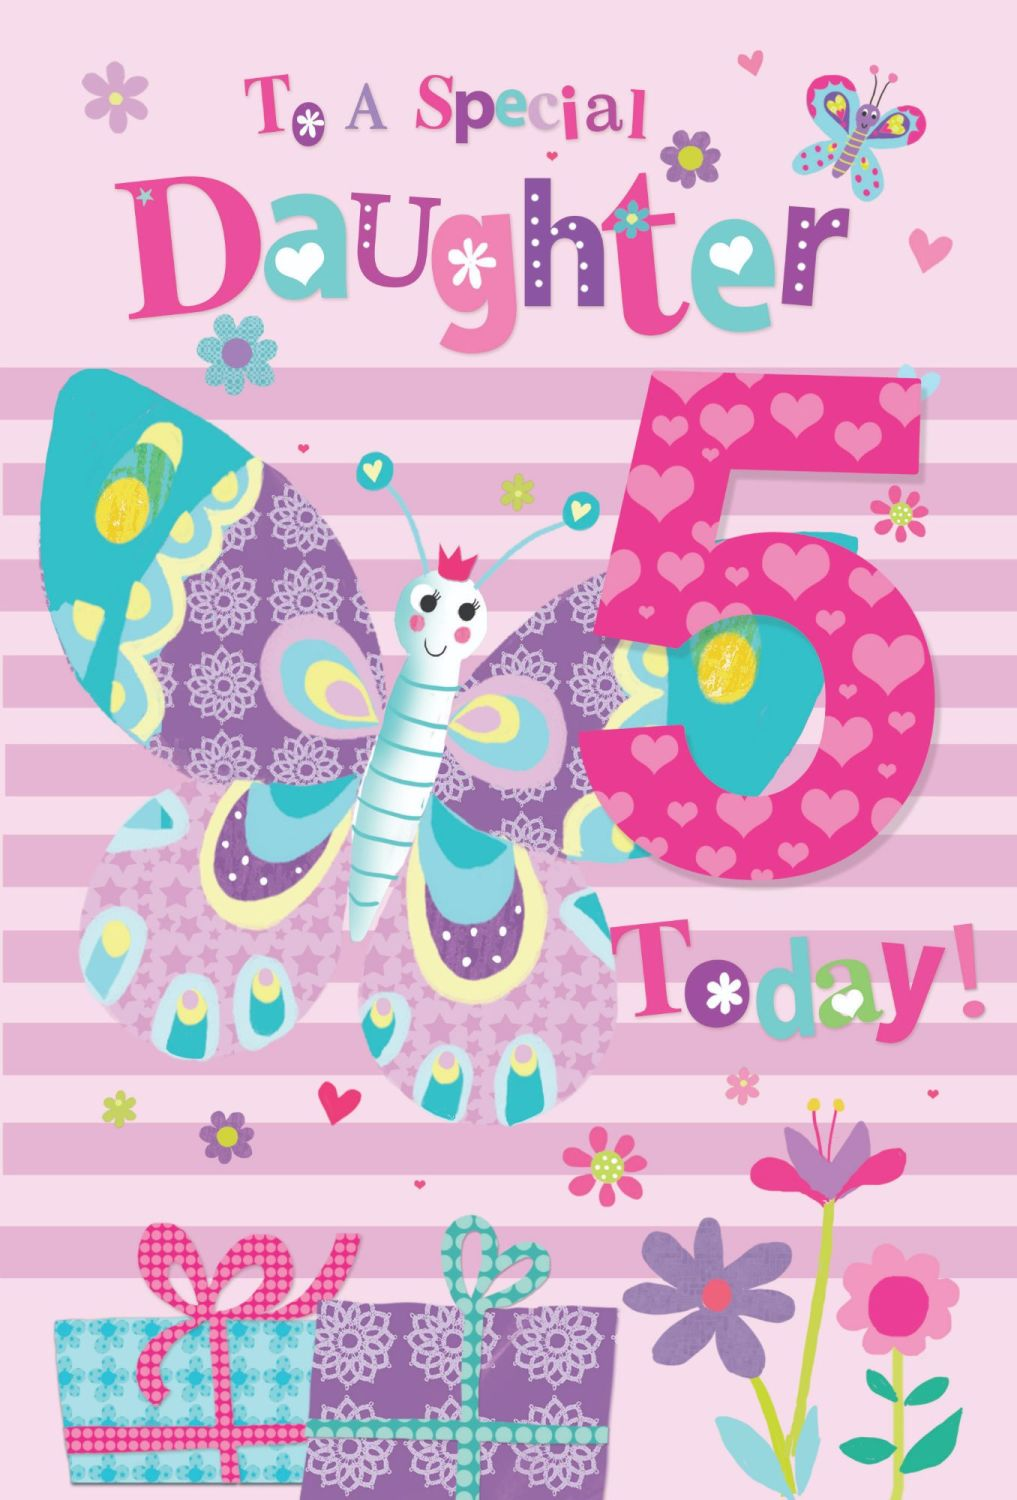 5th Birthday Cards For Special Daughter - TO A Special DAUGHTER - 5 TODAY -